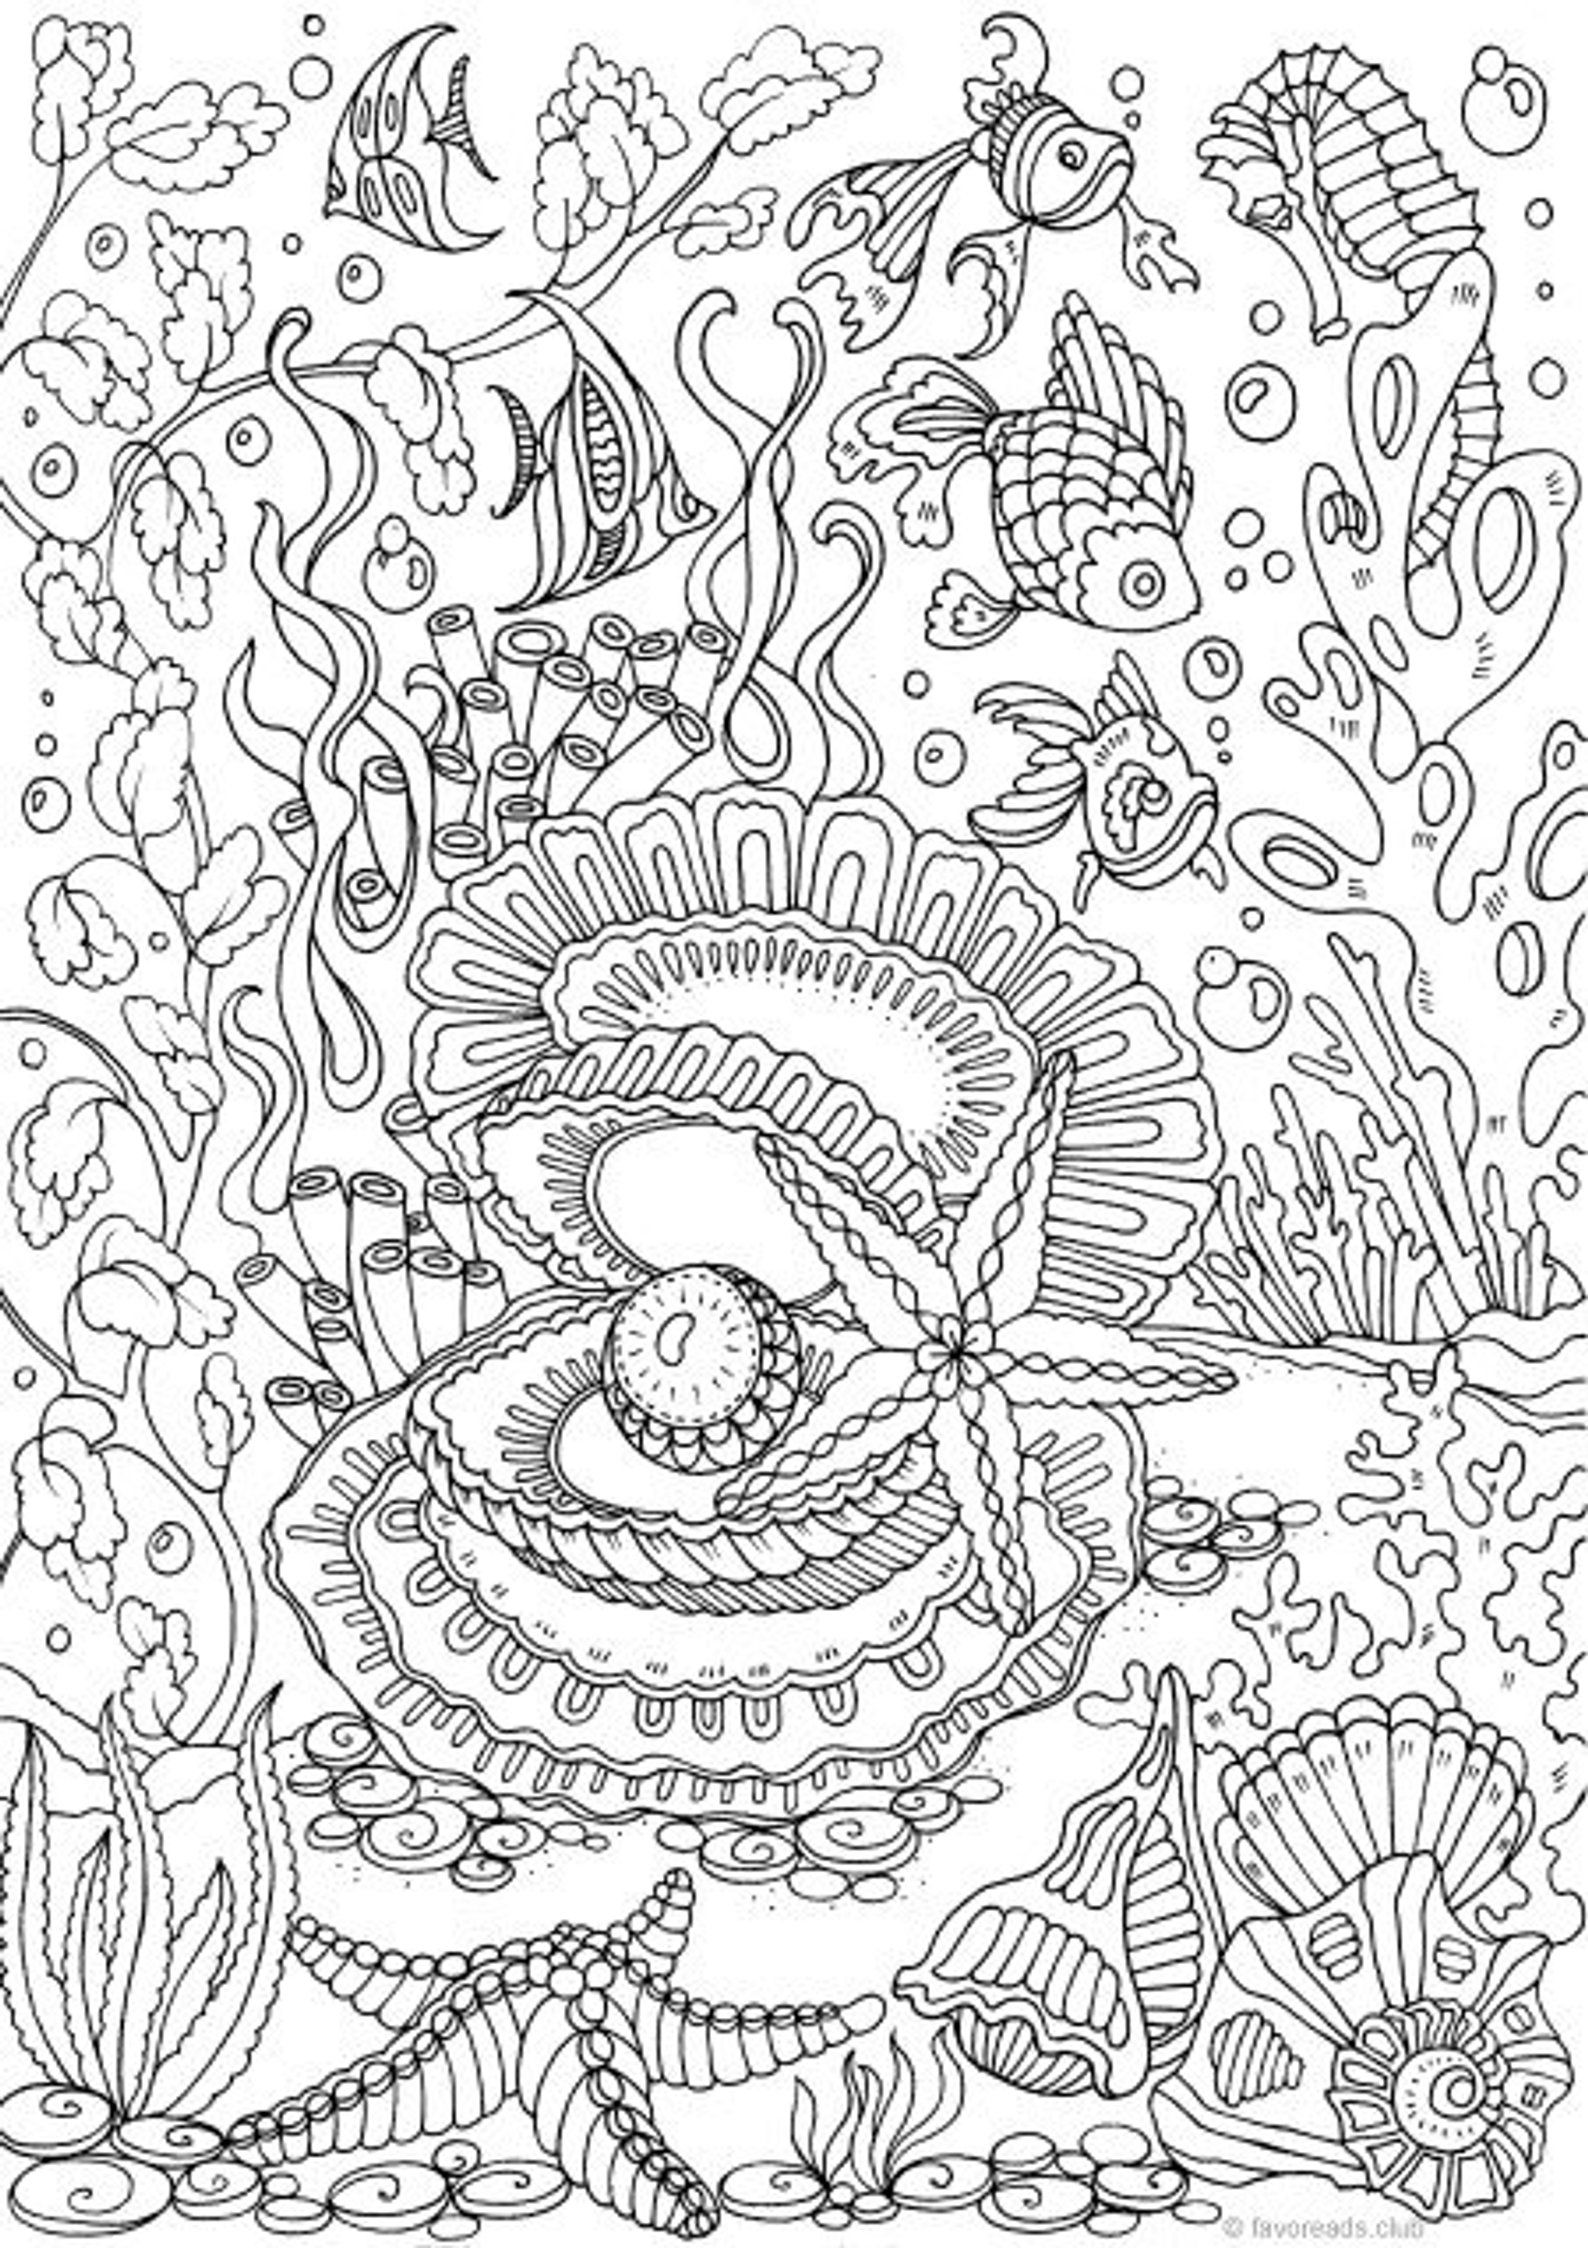 - Ocean Pearl - Printable Adult Coloring Page From Favoreads